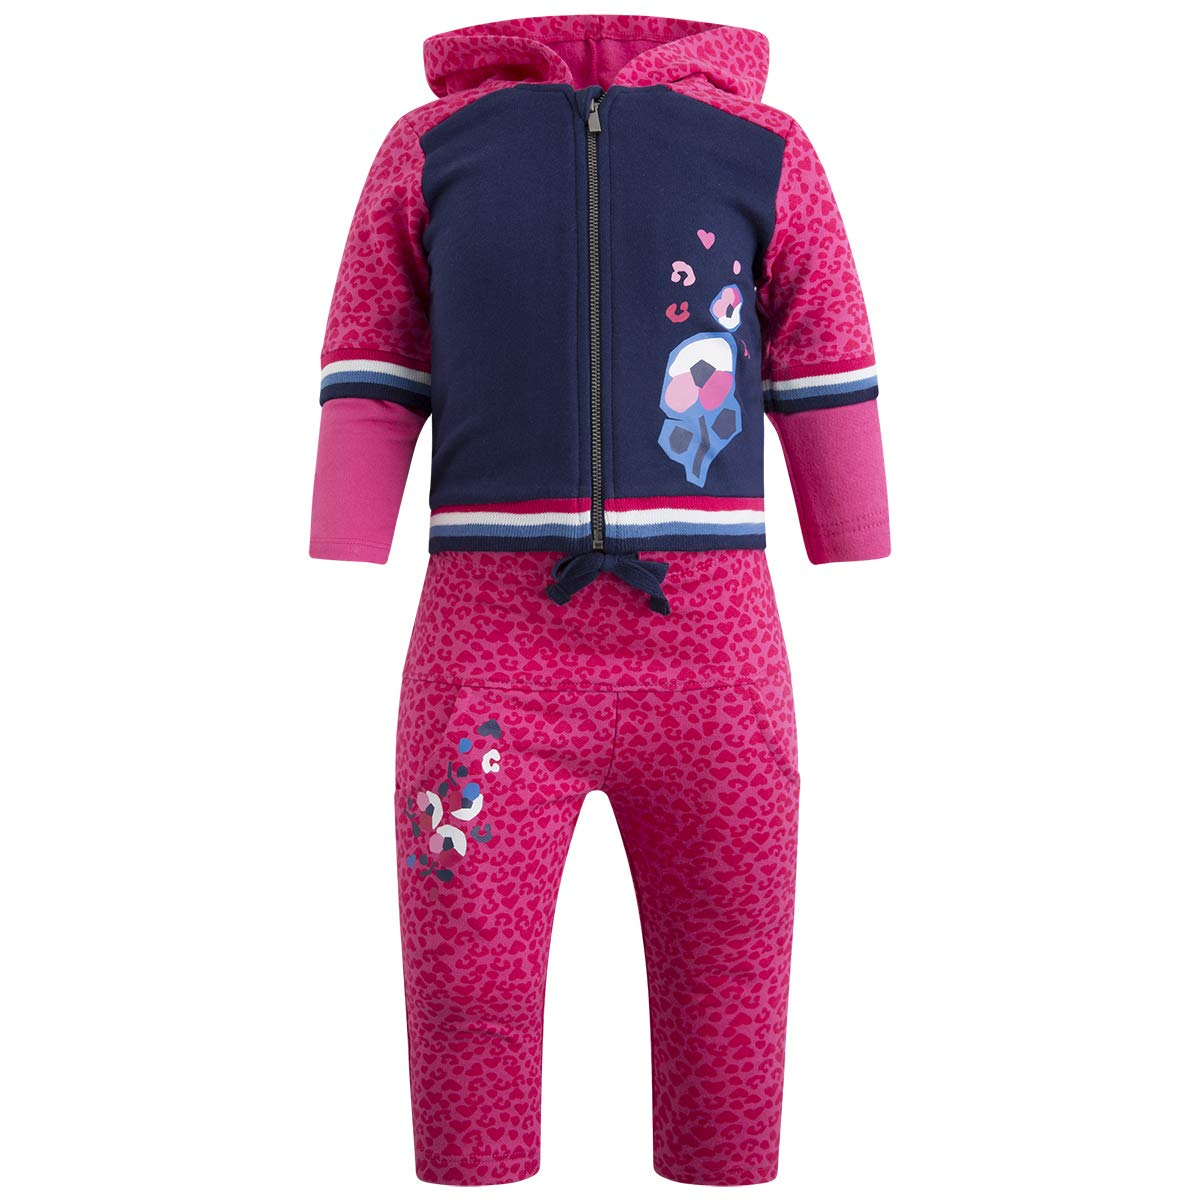 Tuc Tuc Pink Leopard Plush Tracksuit for Girl Dream in Pink